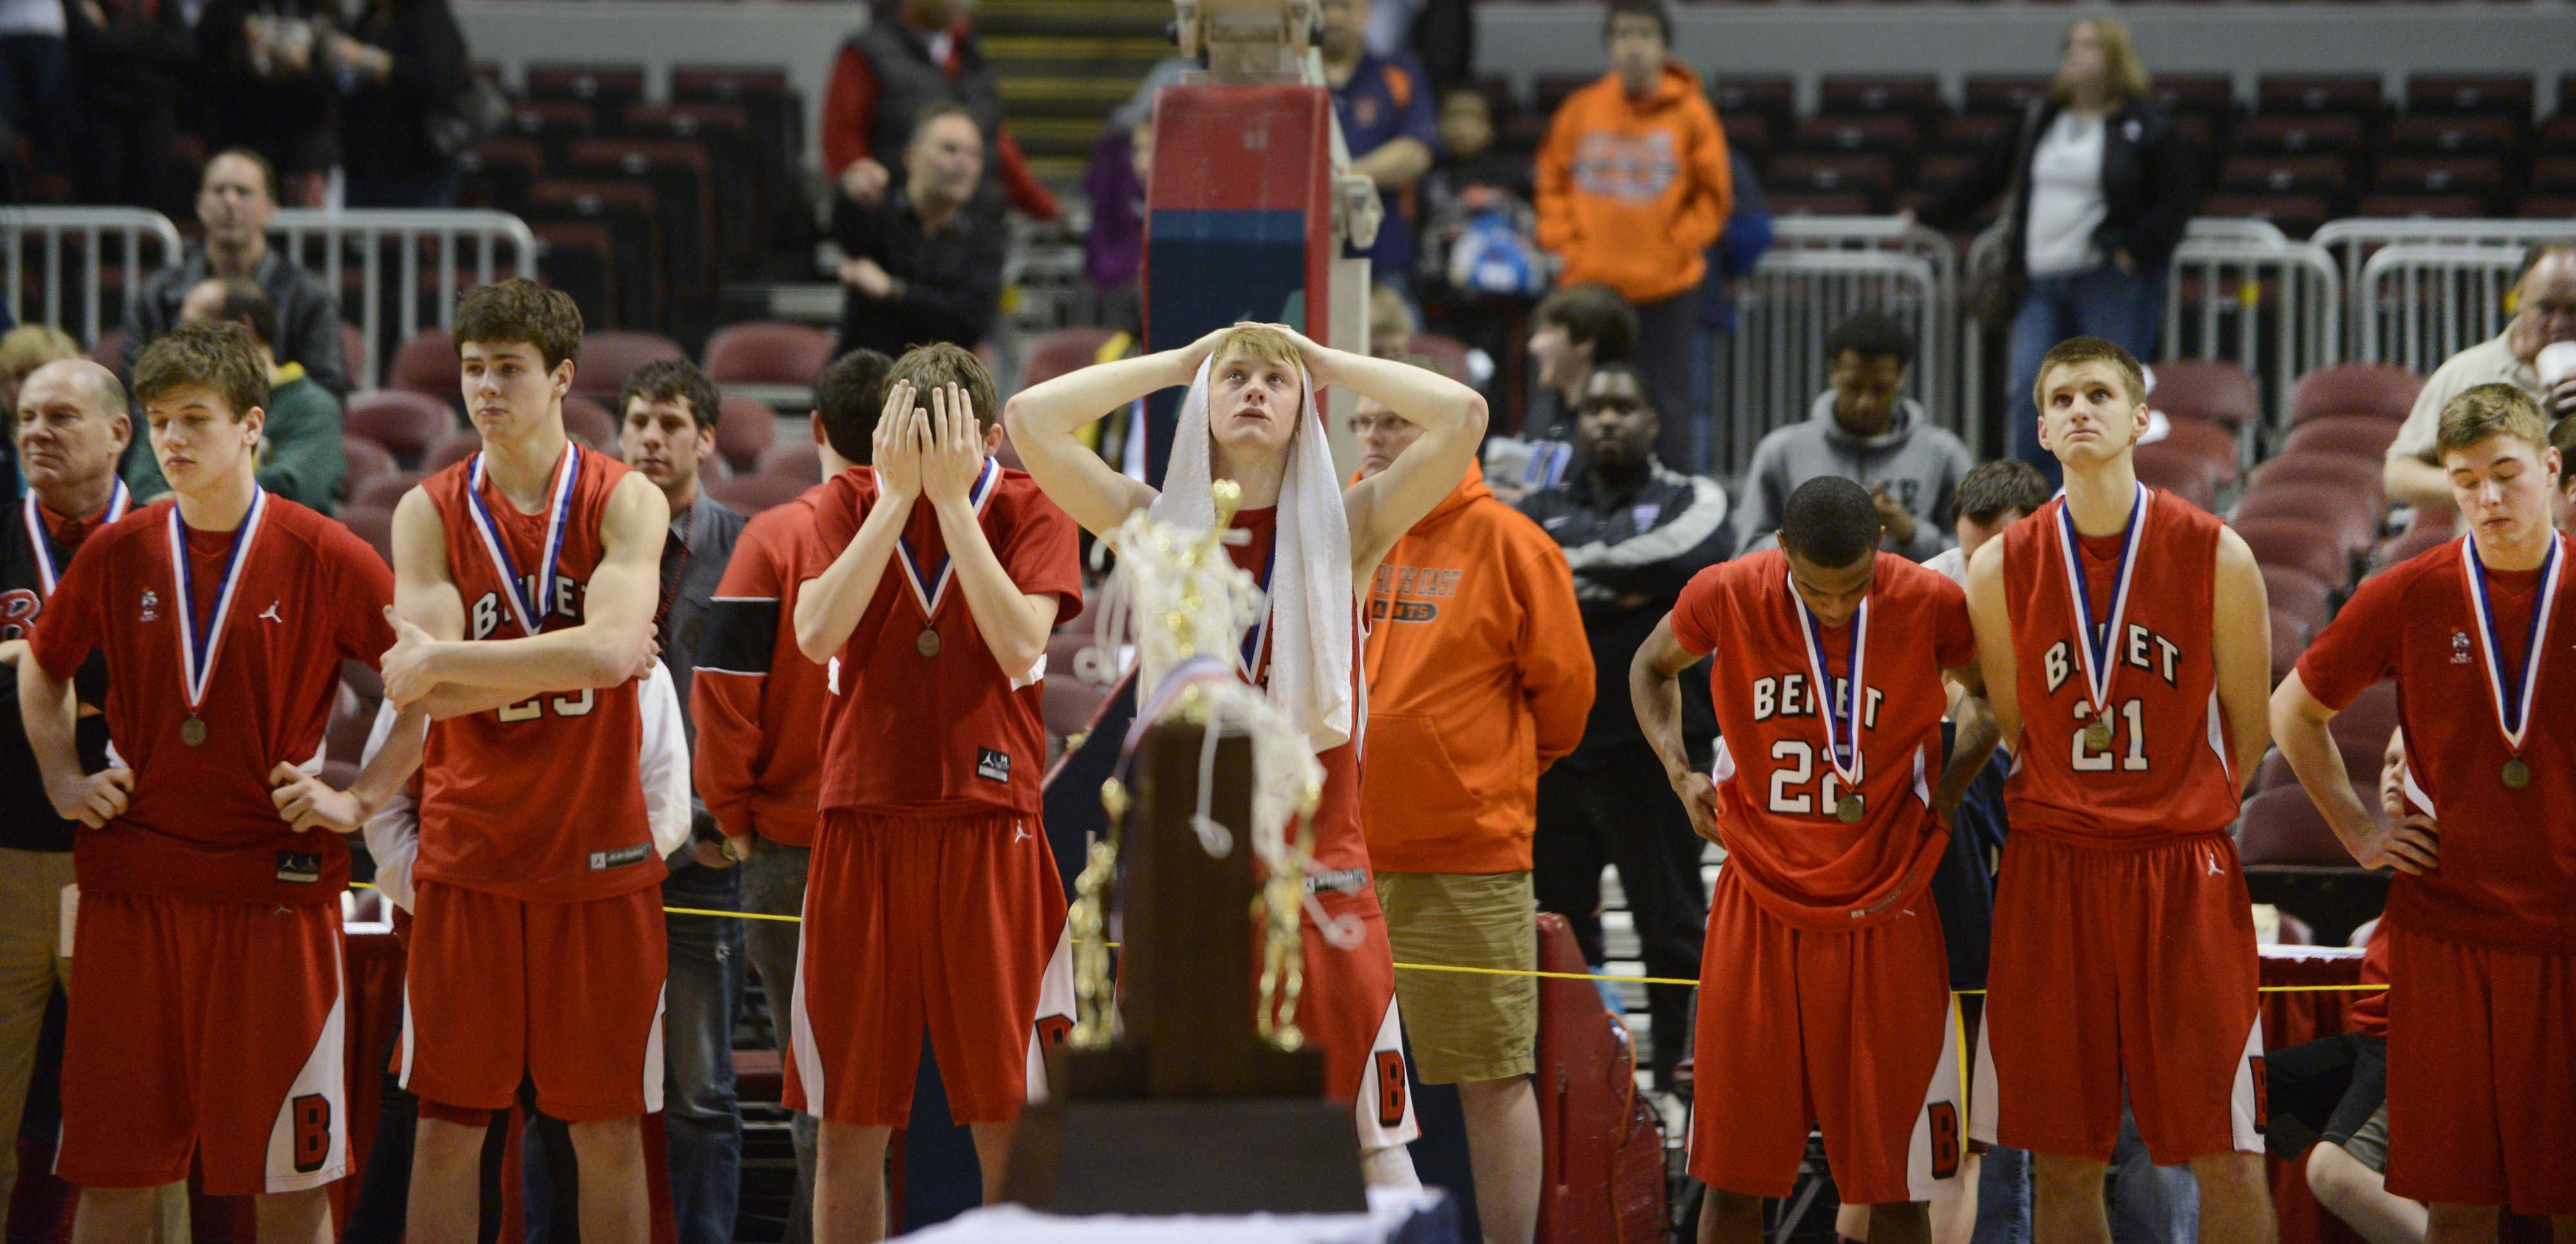 Benet Academy's Liam Nelligan holds a towel on his head as he waits with his teammates for their second place trophy after losing to Whitney Young in the Class 4A state third place game at Carver Arena in Peoria Saturday.